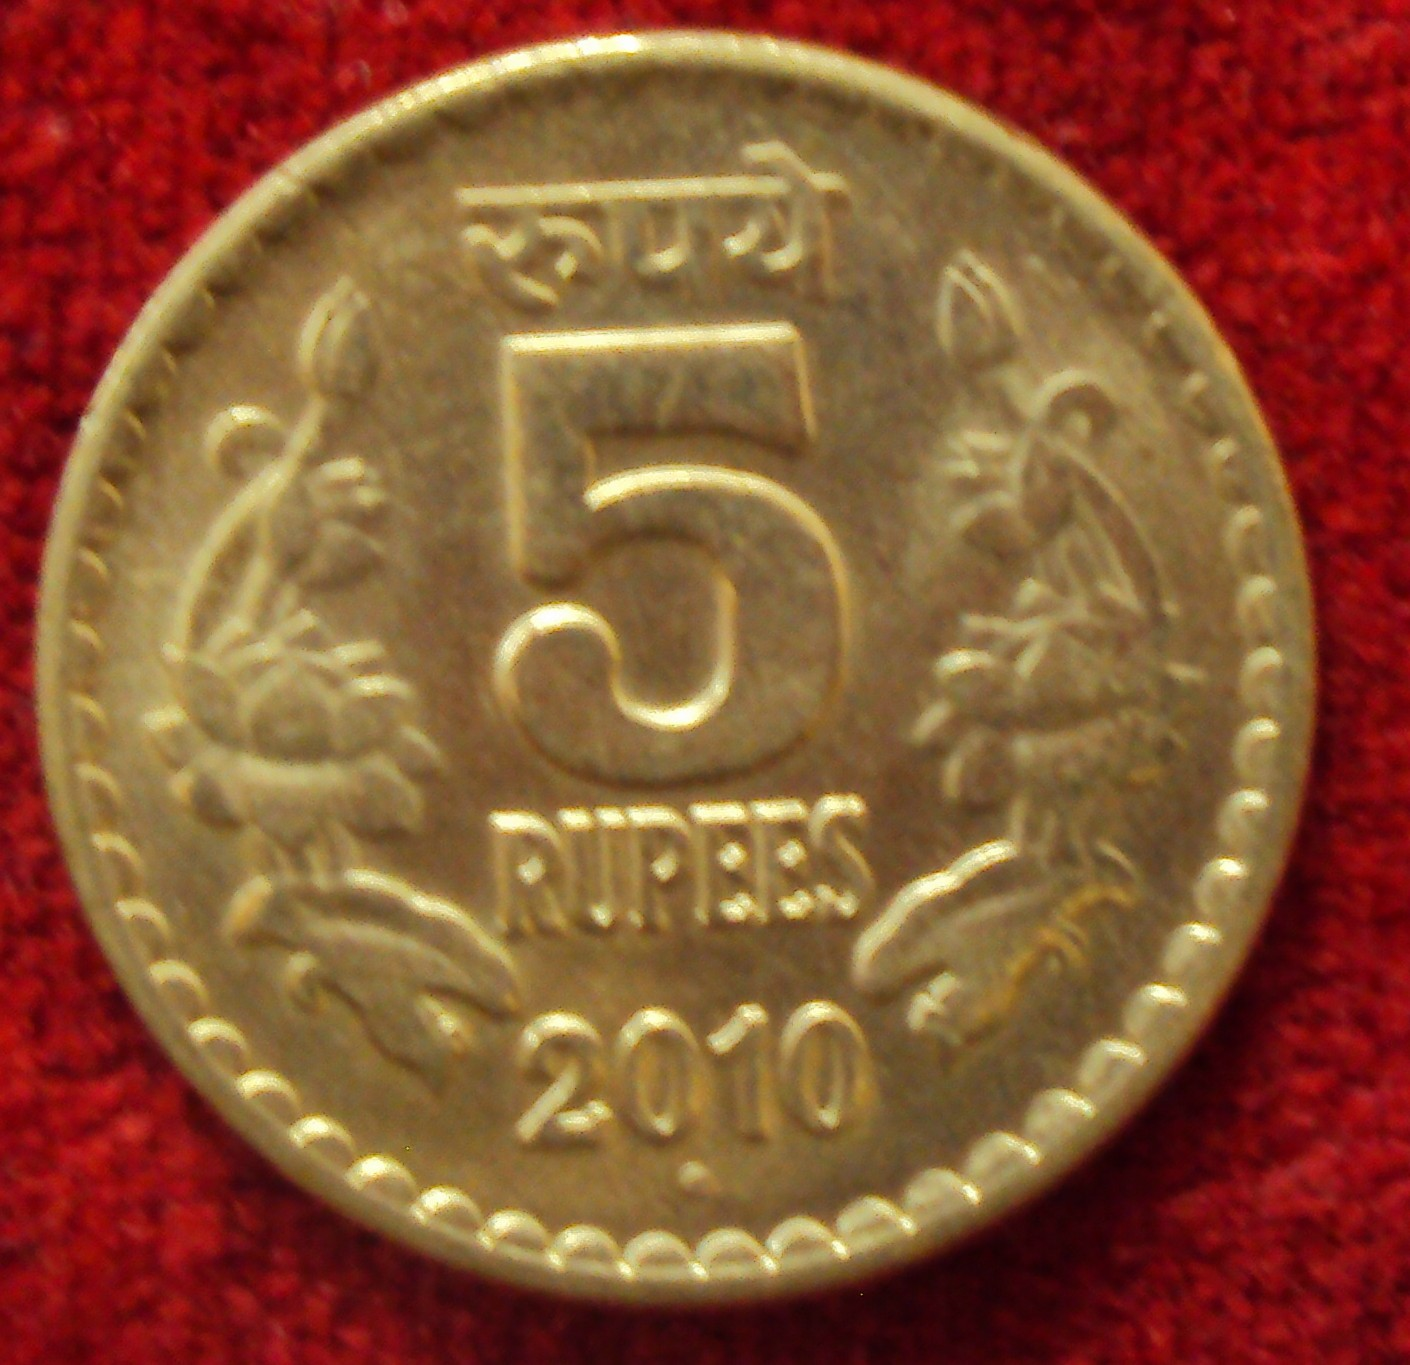 60 Year Anniversary >> Coin Collection: My 5 Rupee Coin Collection (India)